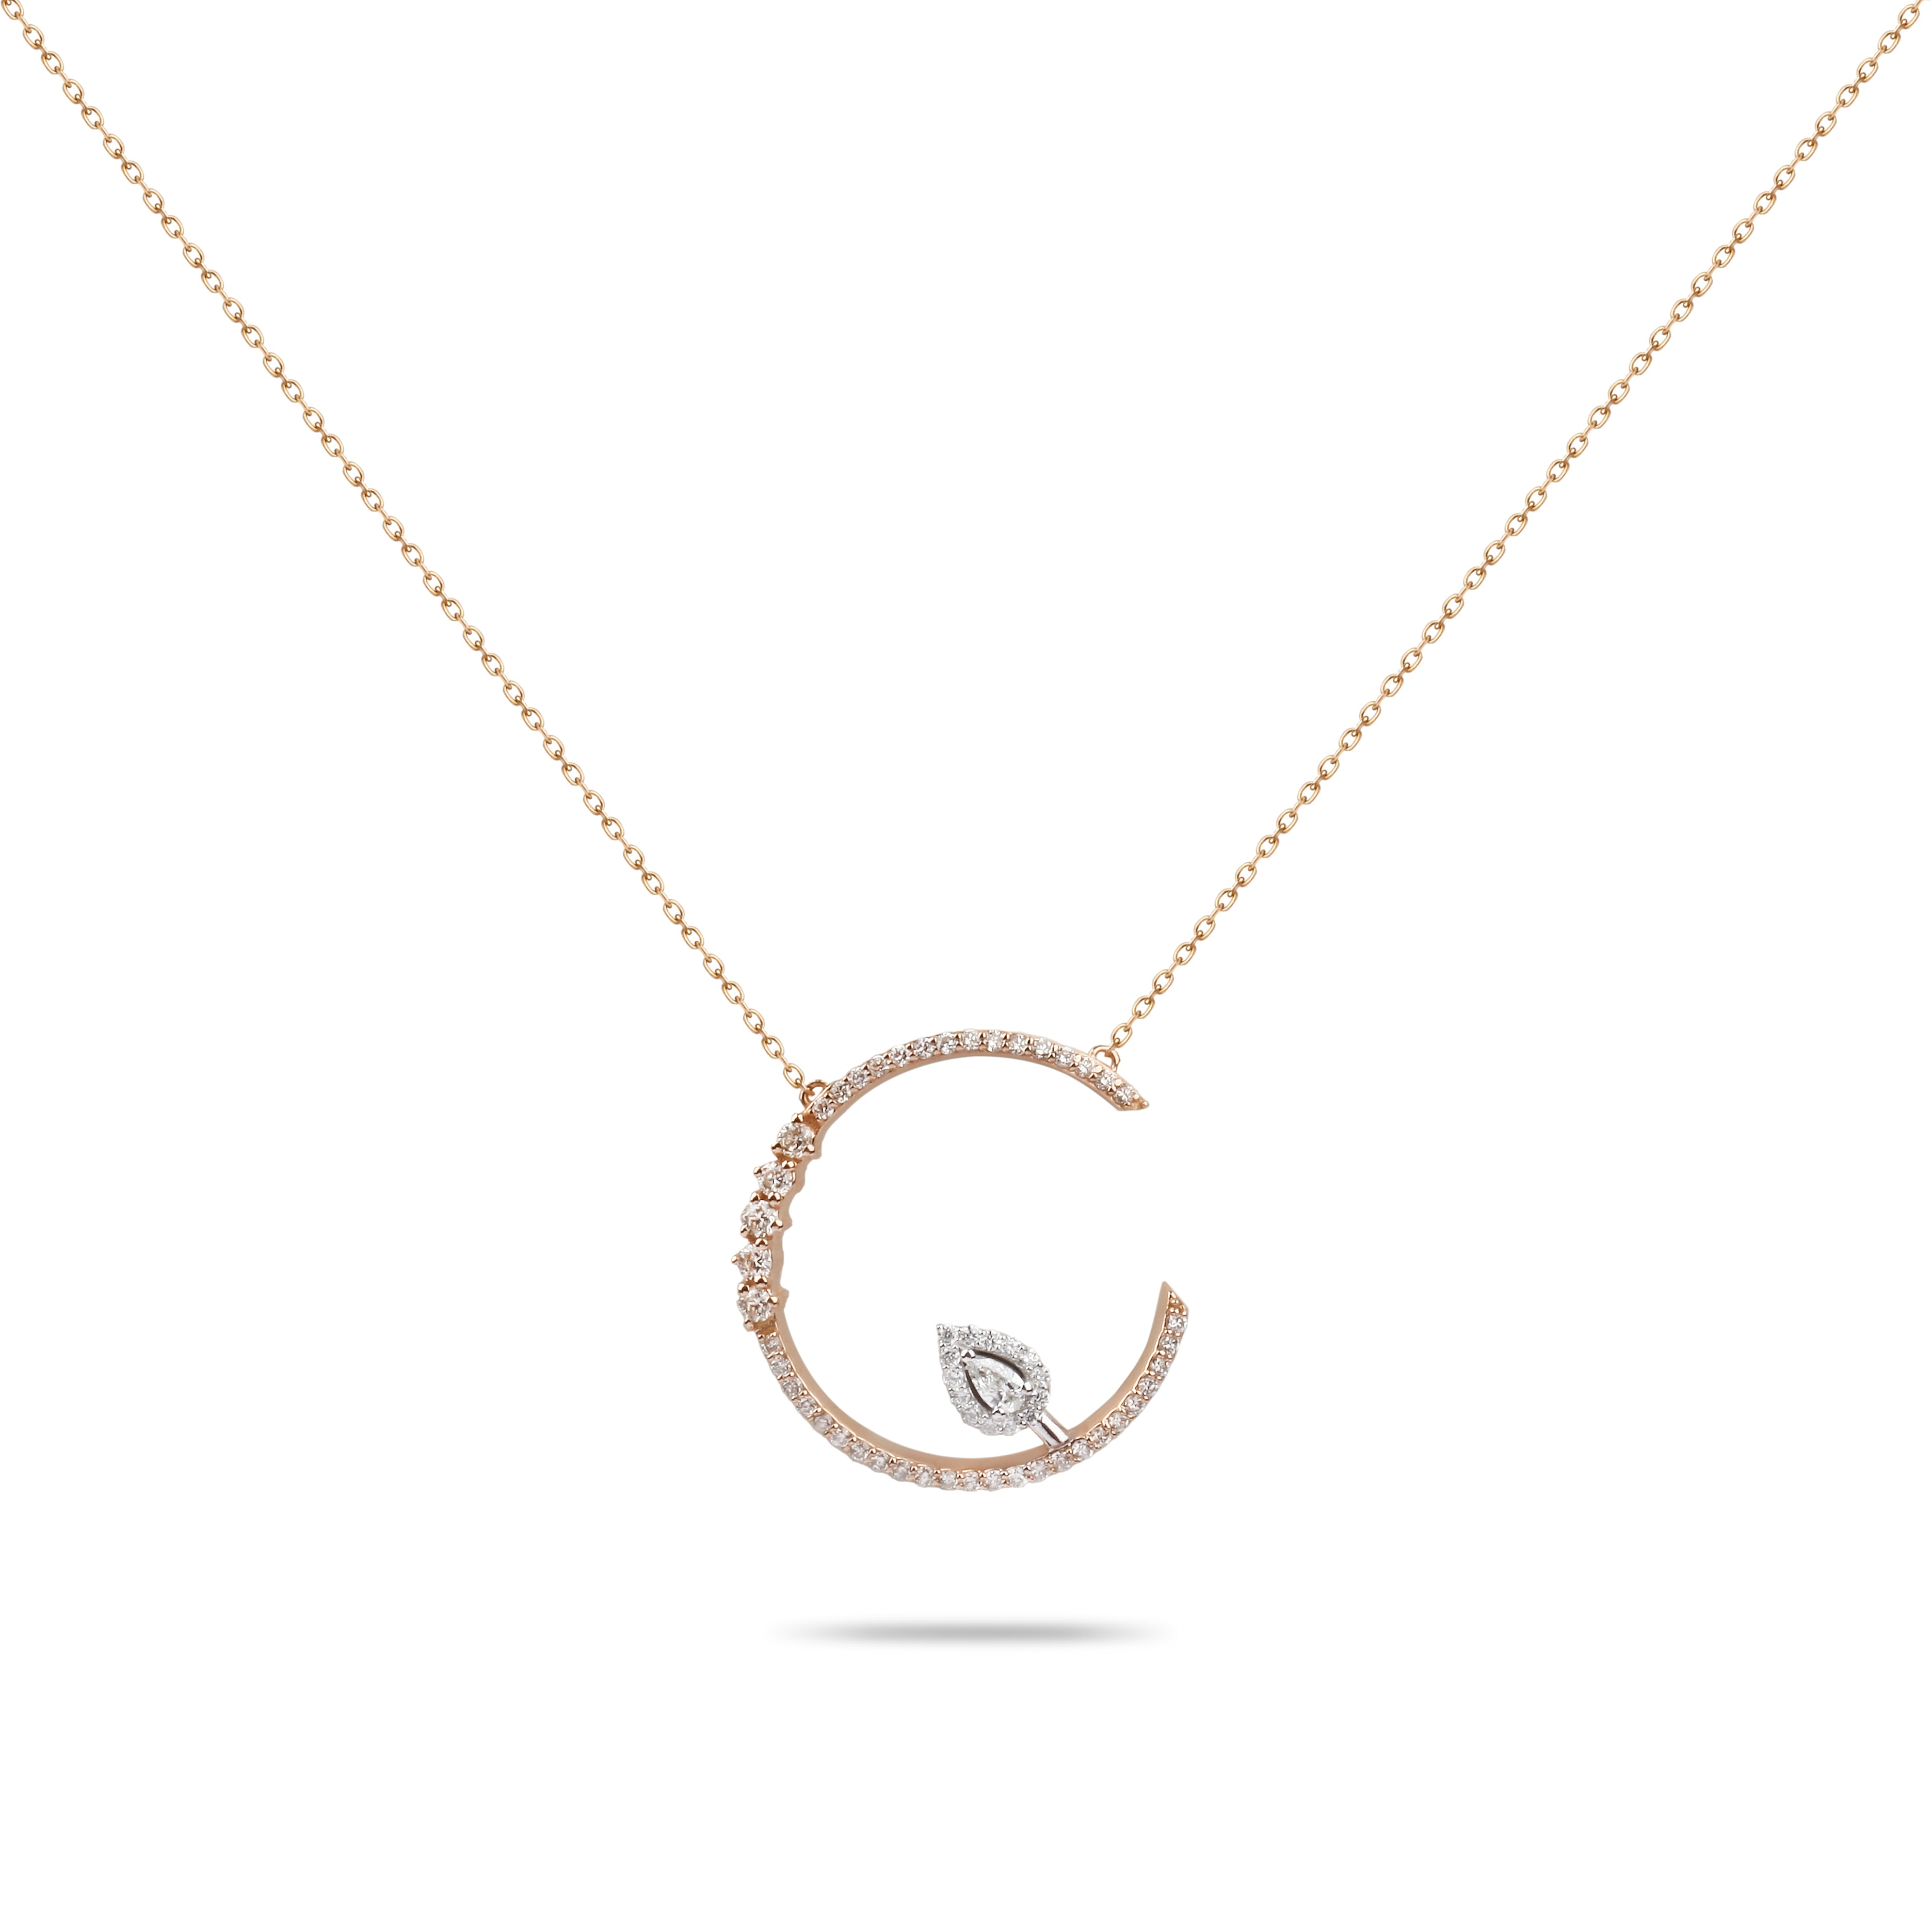 Rose Gold & Diamond Drop Necklace